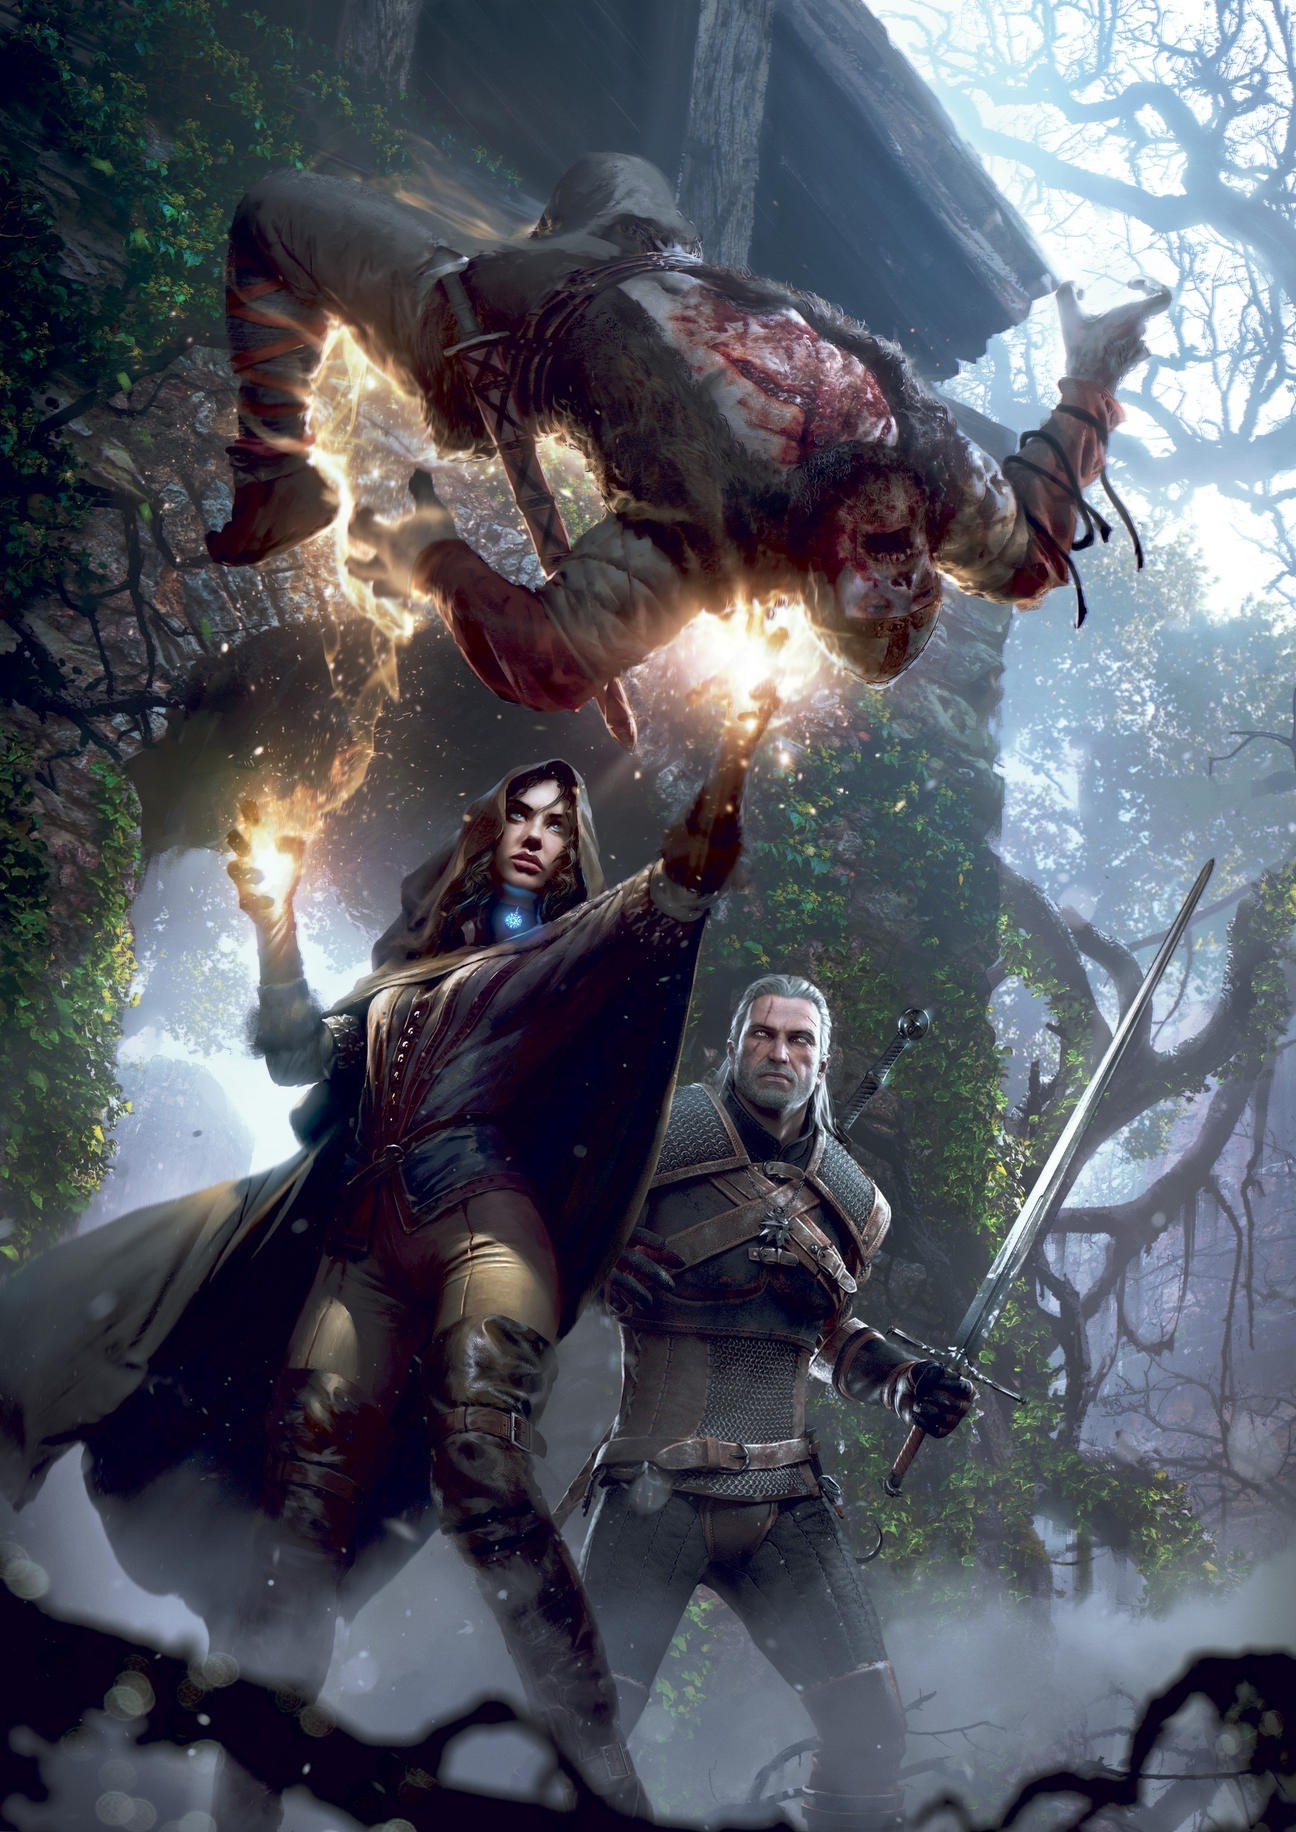 3d Wallpaper For Home Screen The Witcher 3 Wild Hunt Video Games Geralt Of Rivia